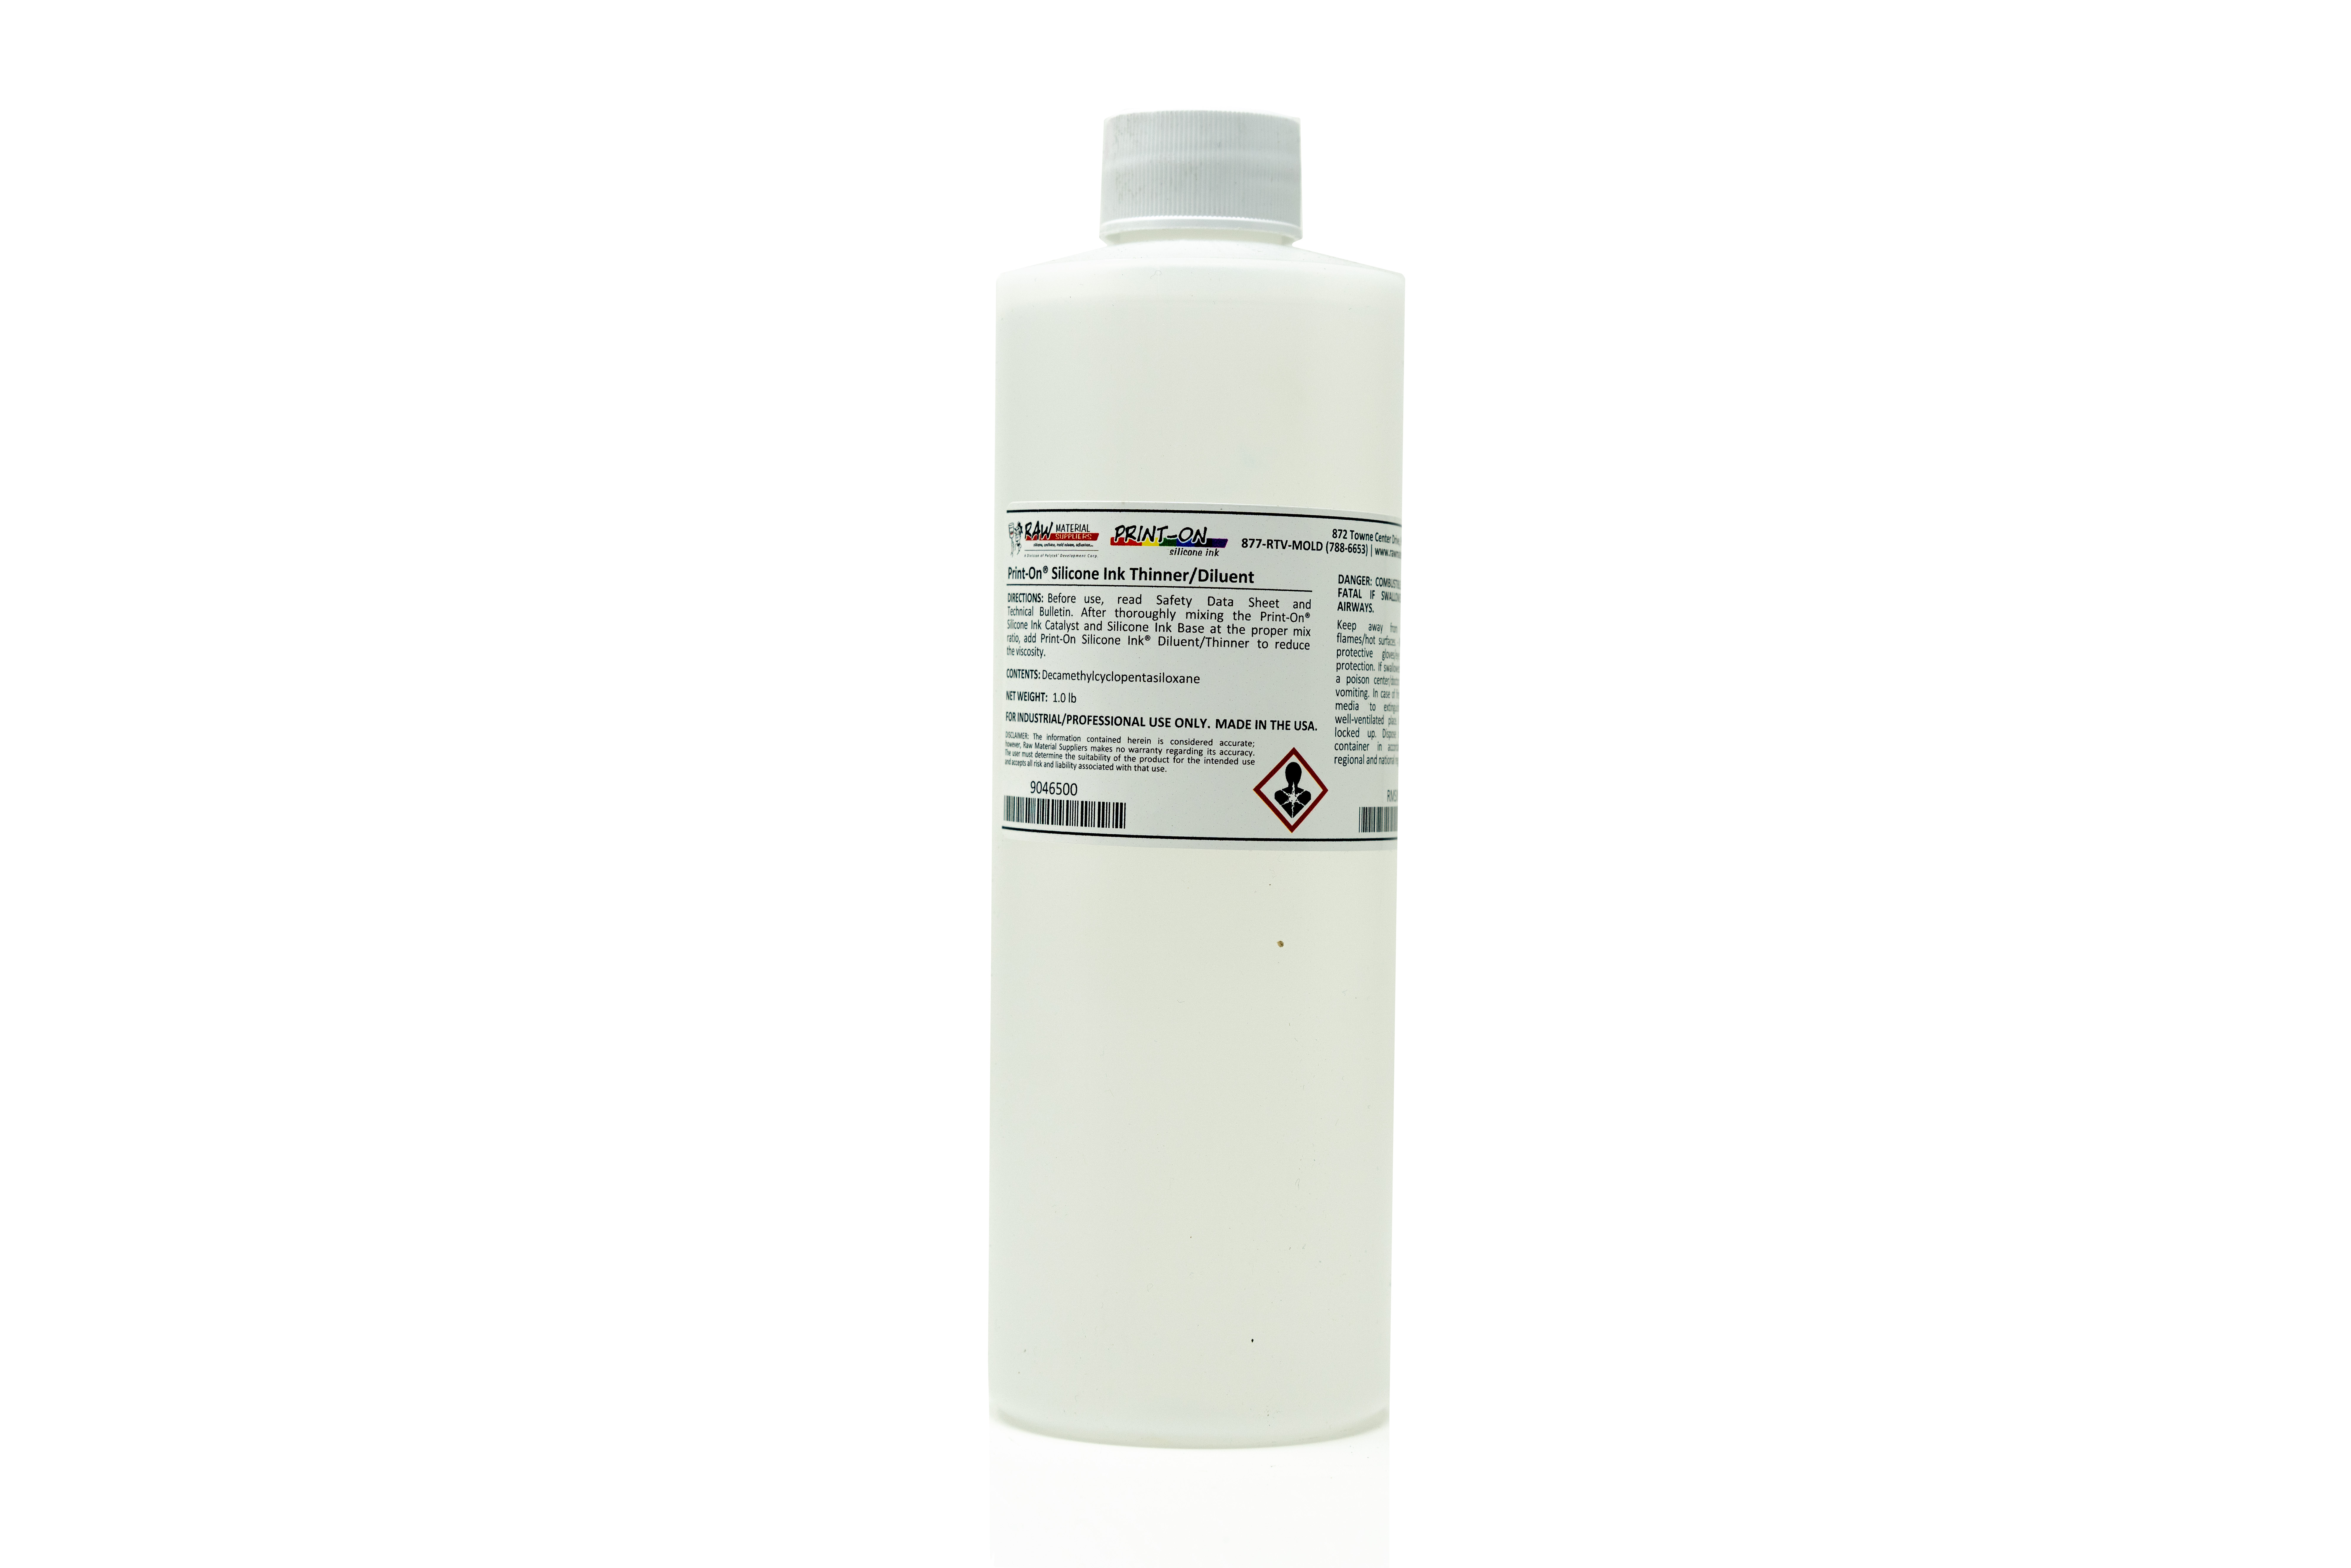 Print-On® Silicone Ink Thinner/Diluent